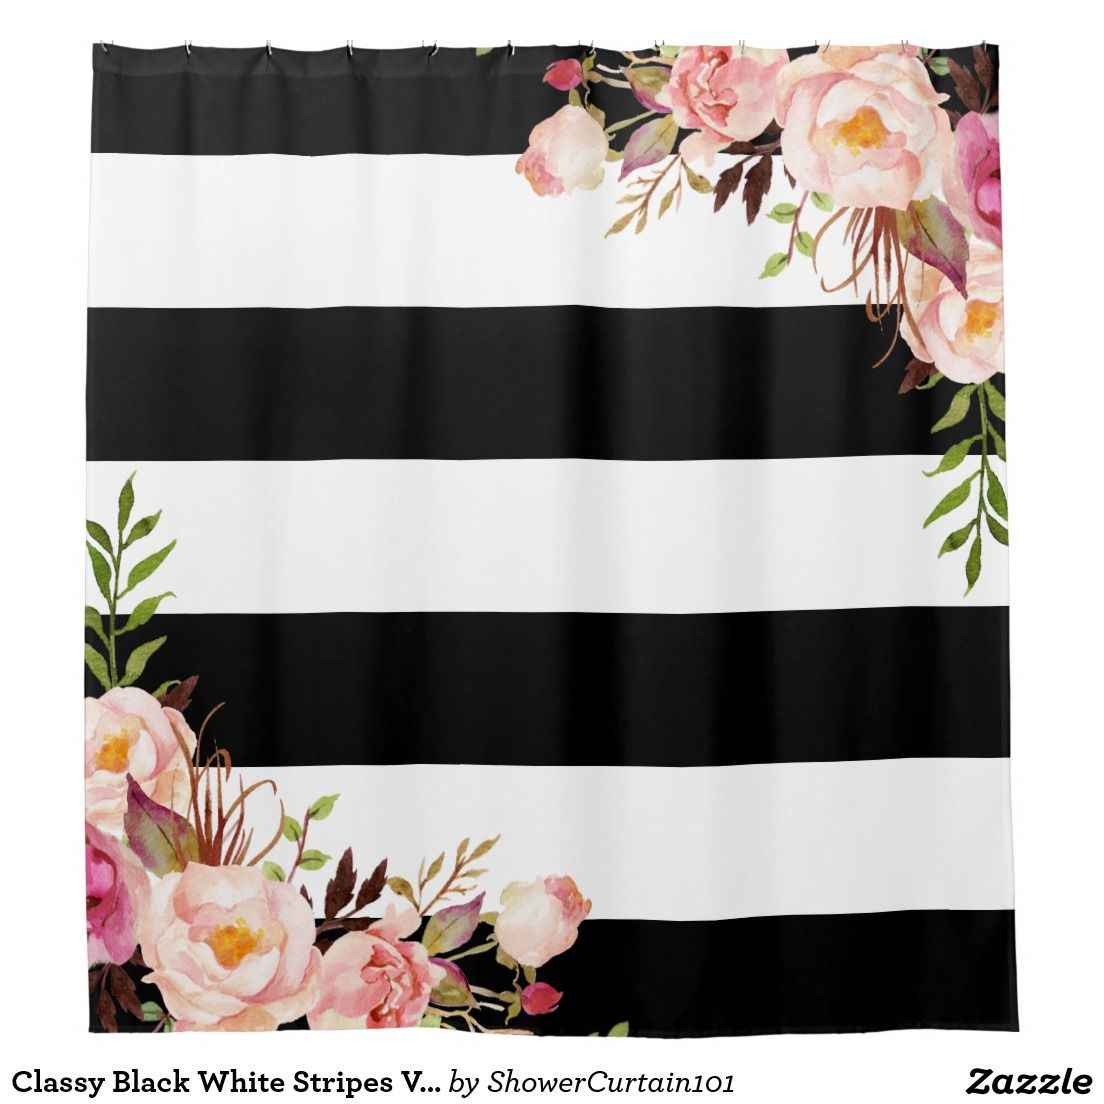 Monogrammed Shower Curtain Etsy - Classy black white stripes vintage floral monogram shower curtain